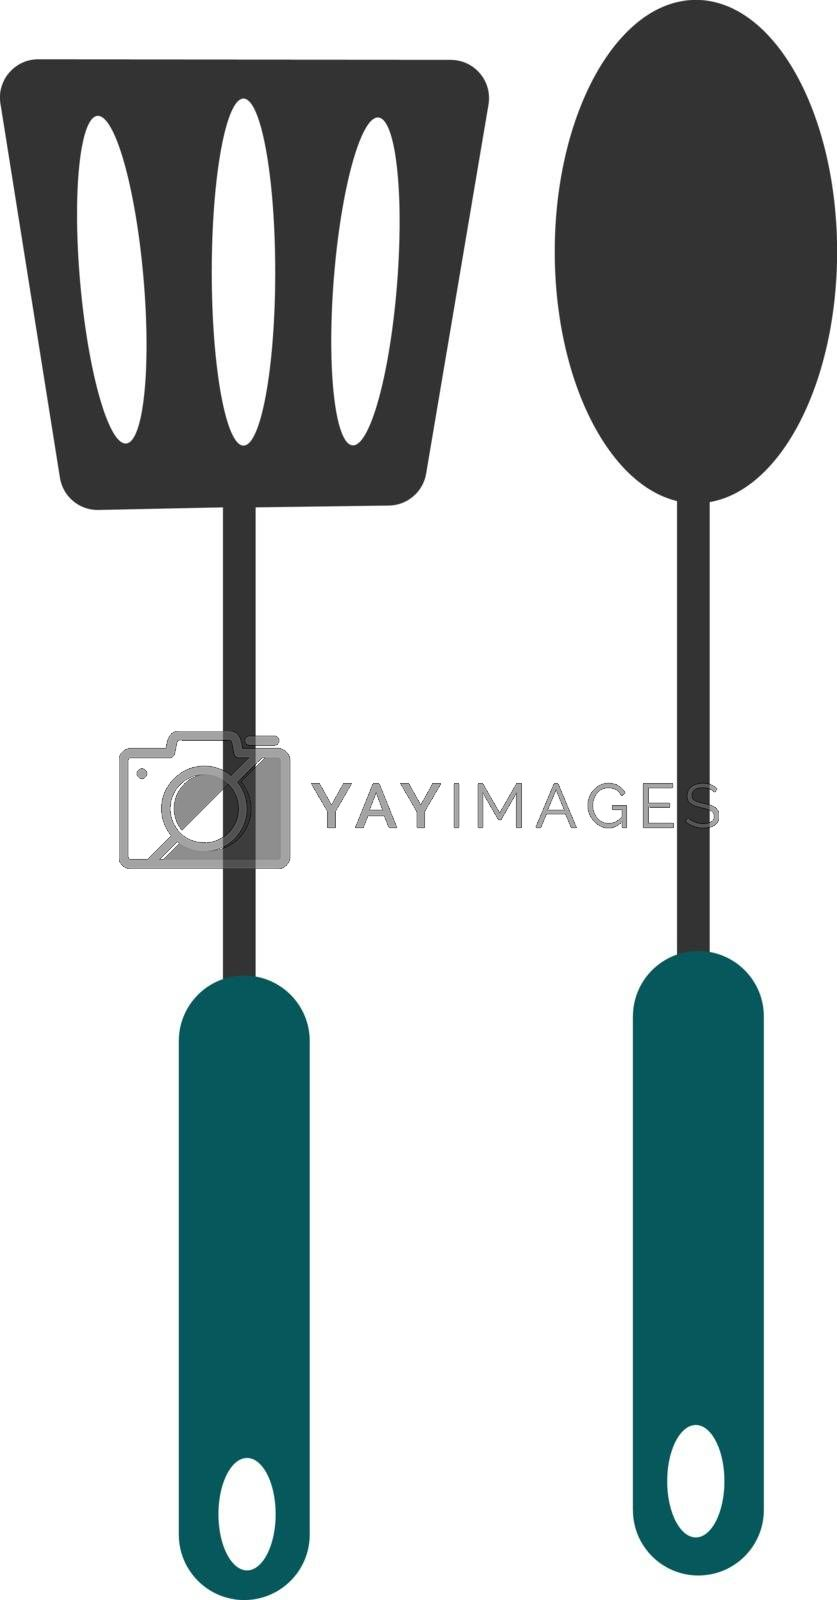 Royalty free image of Nylon slotted serving spoon and a spoon vector or color illustra by Morphart